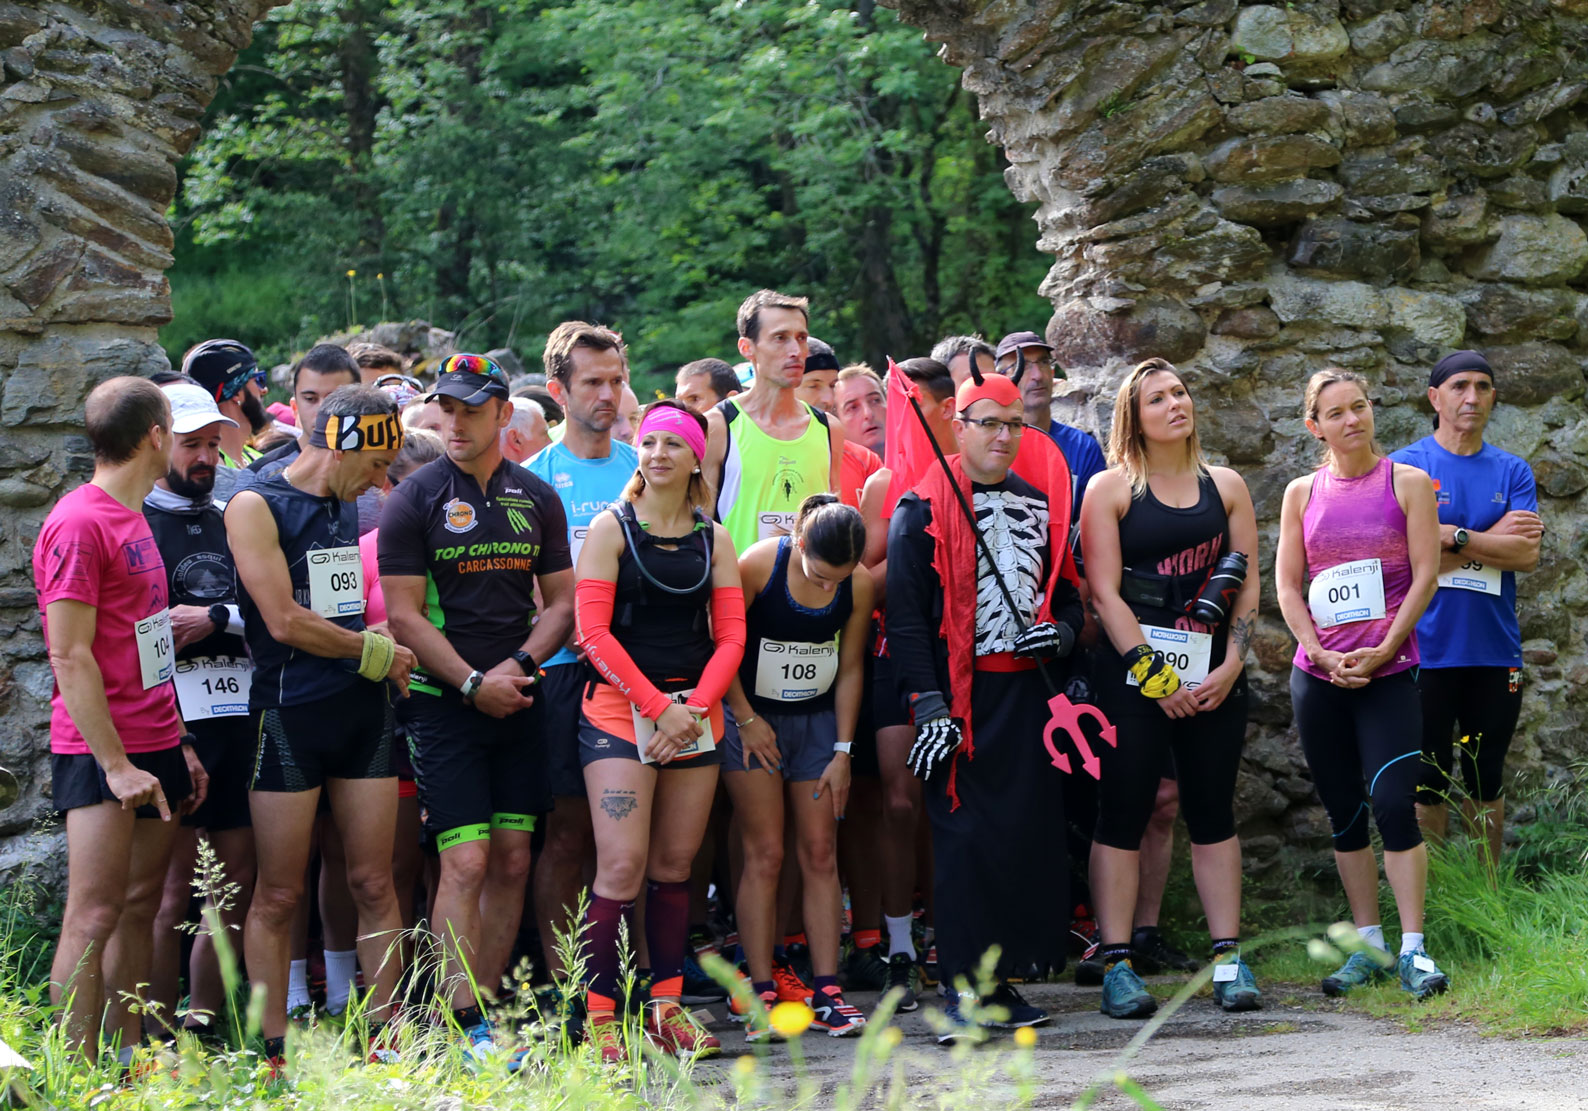 Resultats Le Diable Et Les Gardes Du Clocher Midi Run